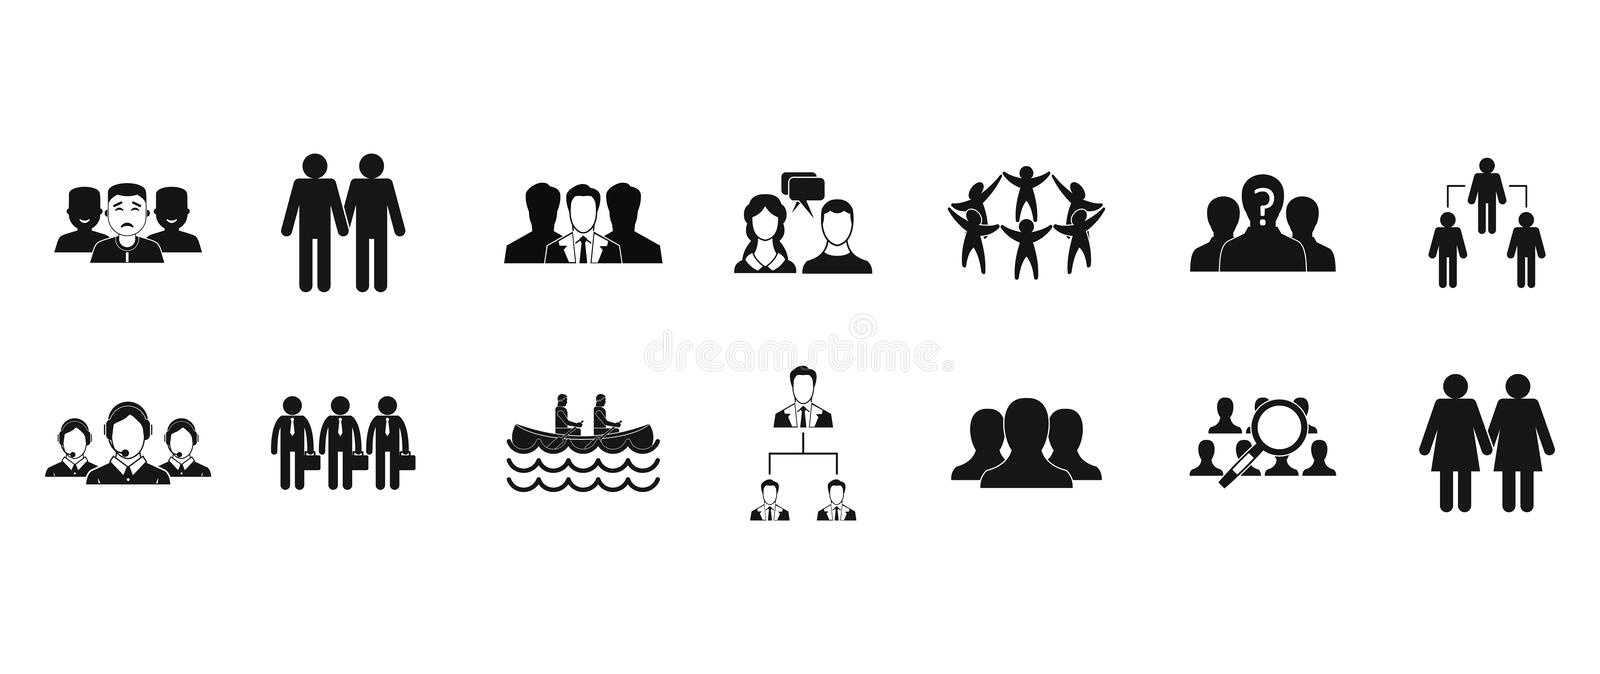 People group icon set, simple style vector illustration